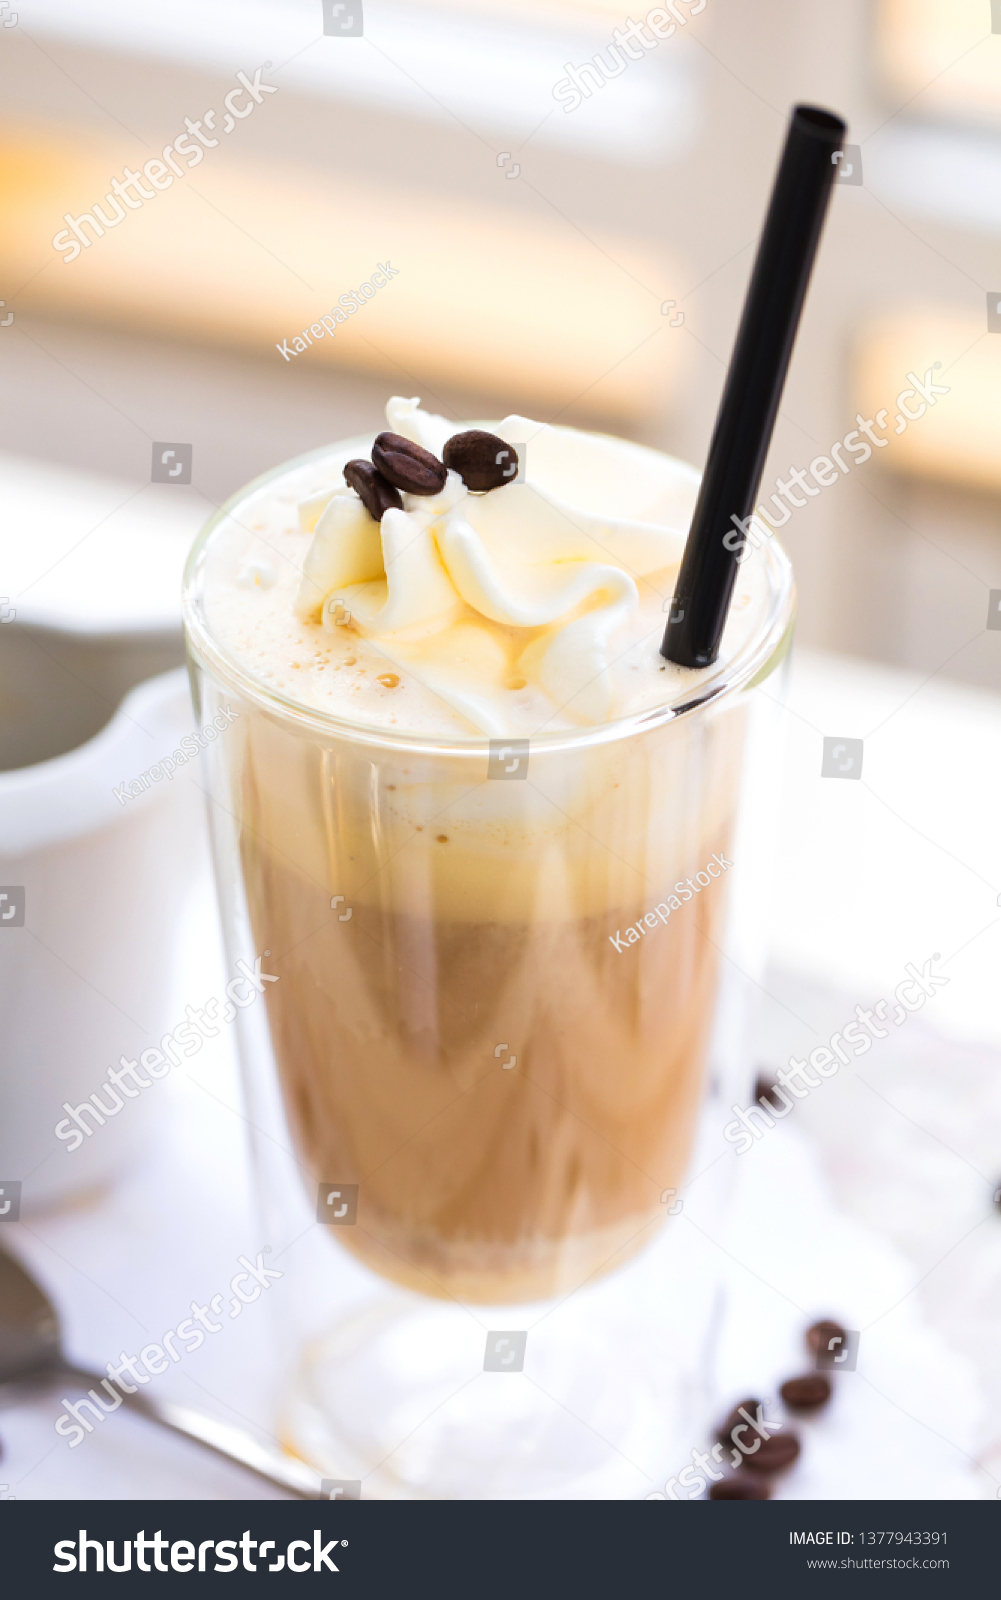 Marmortisch Cafe Affogato Coffee Ice Cream On Cup Stock Photo Edit Now 1377943391